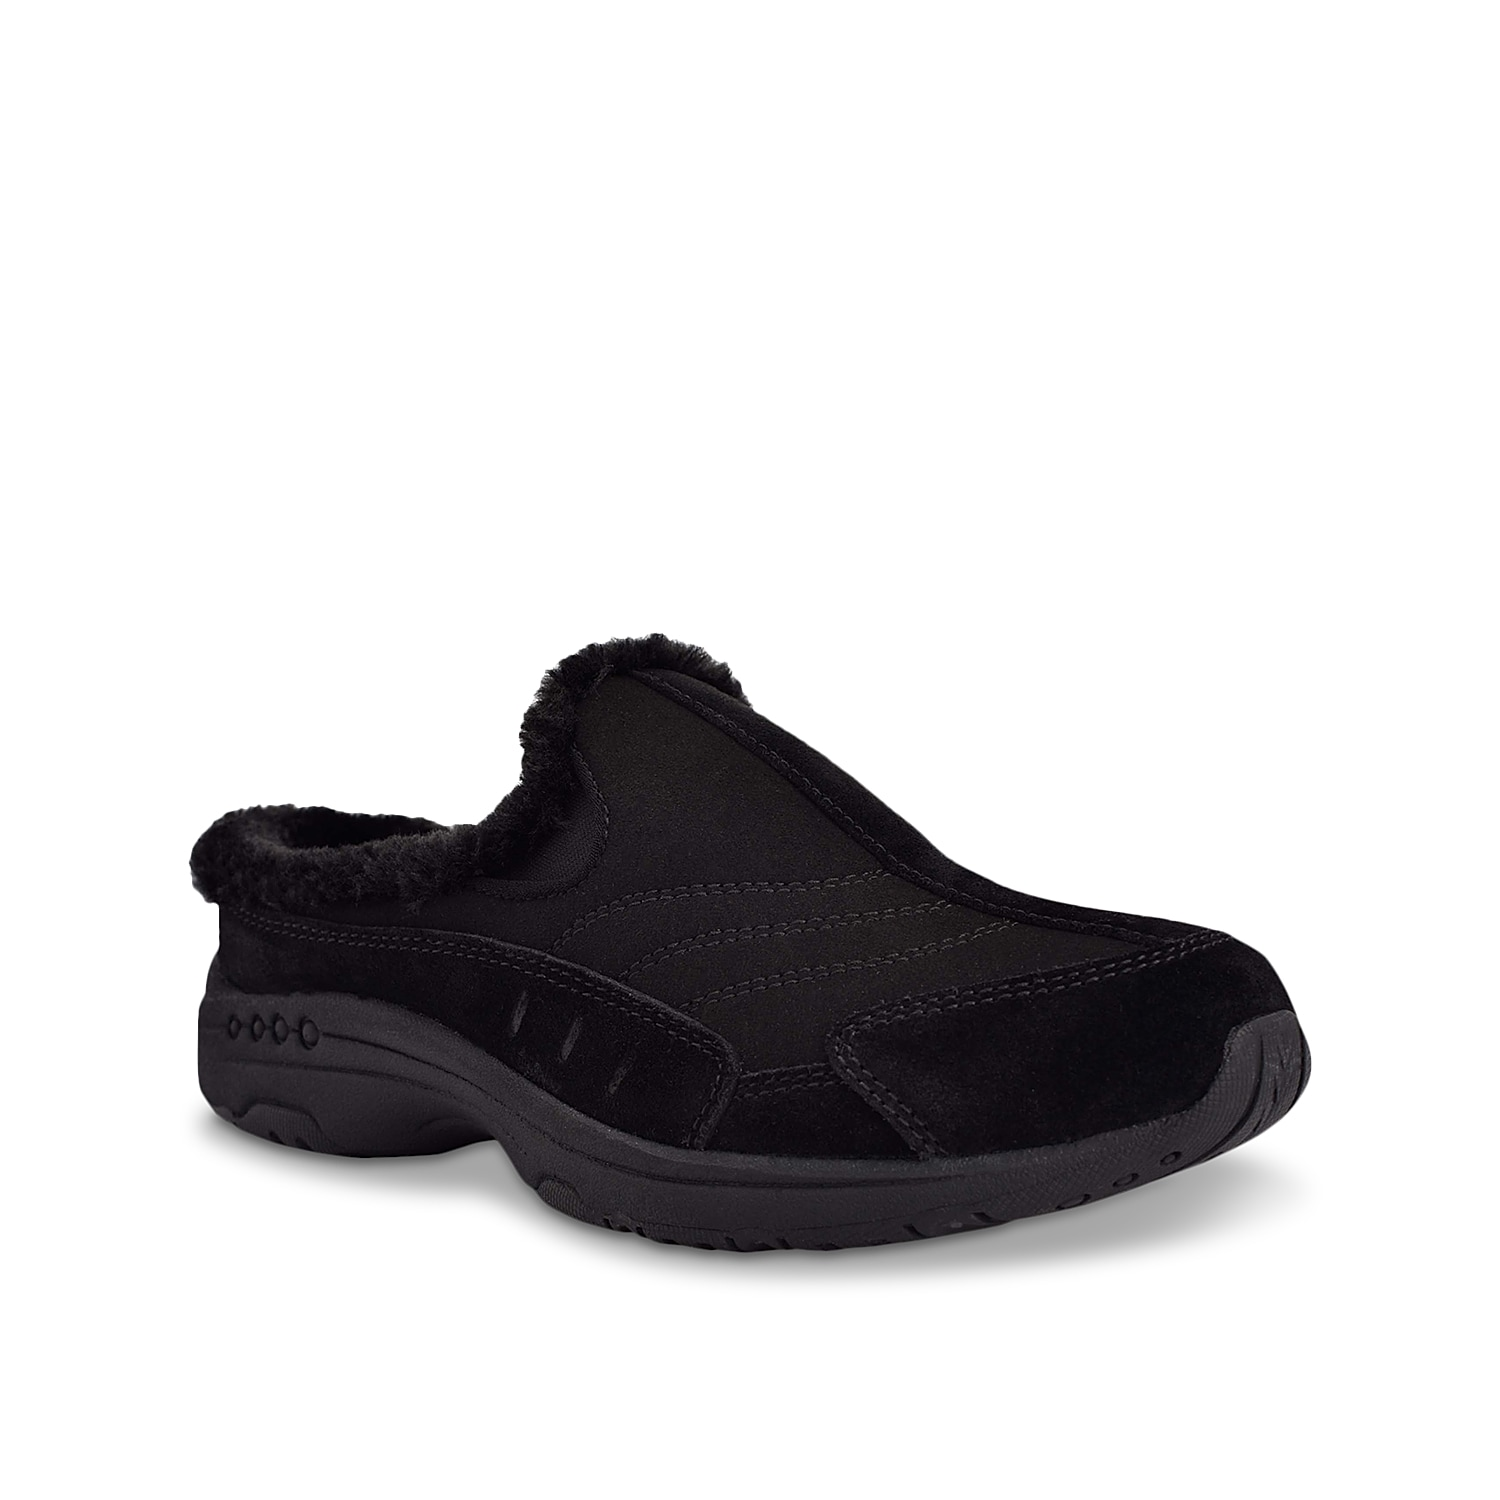 Complete your casual shoe collection with the Travelfuzz clog from Easy Spirit. This slip-on features a removable cushioned insole and an EVA midsole to promote flexibility and comfort in each step you take!